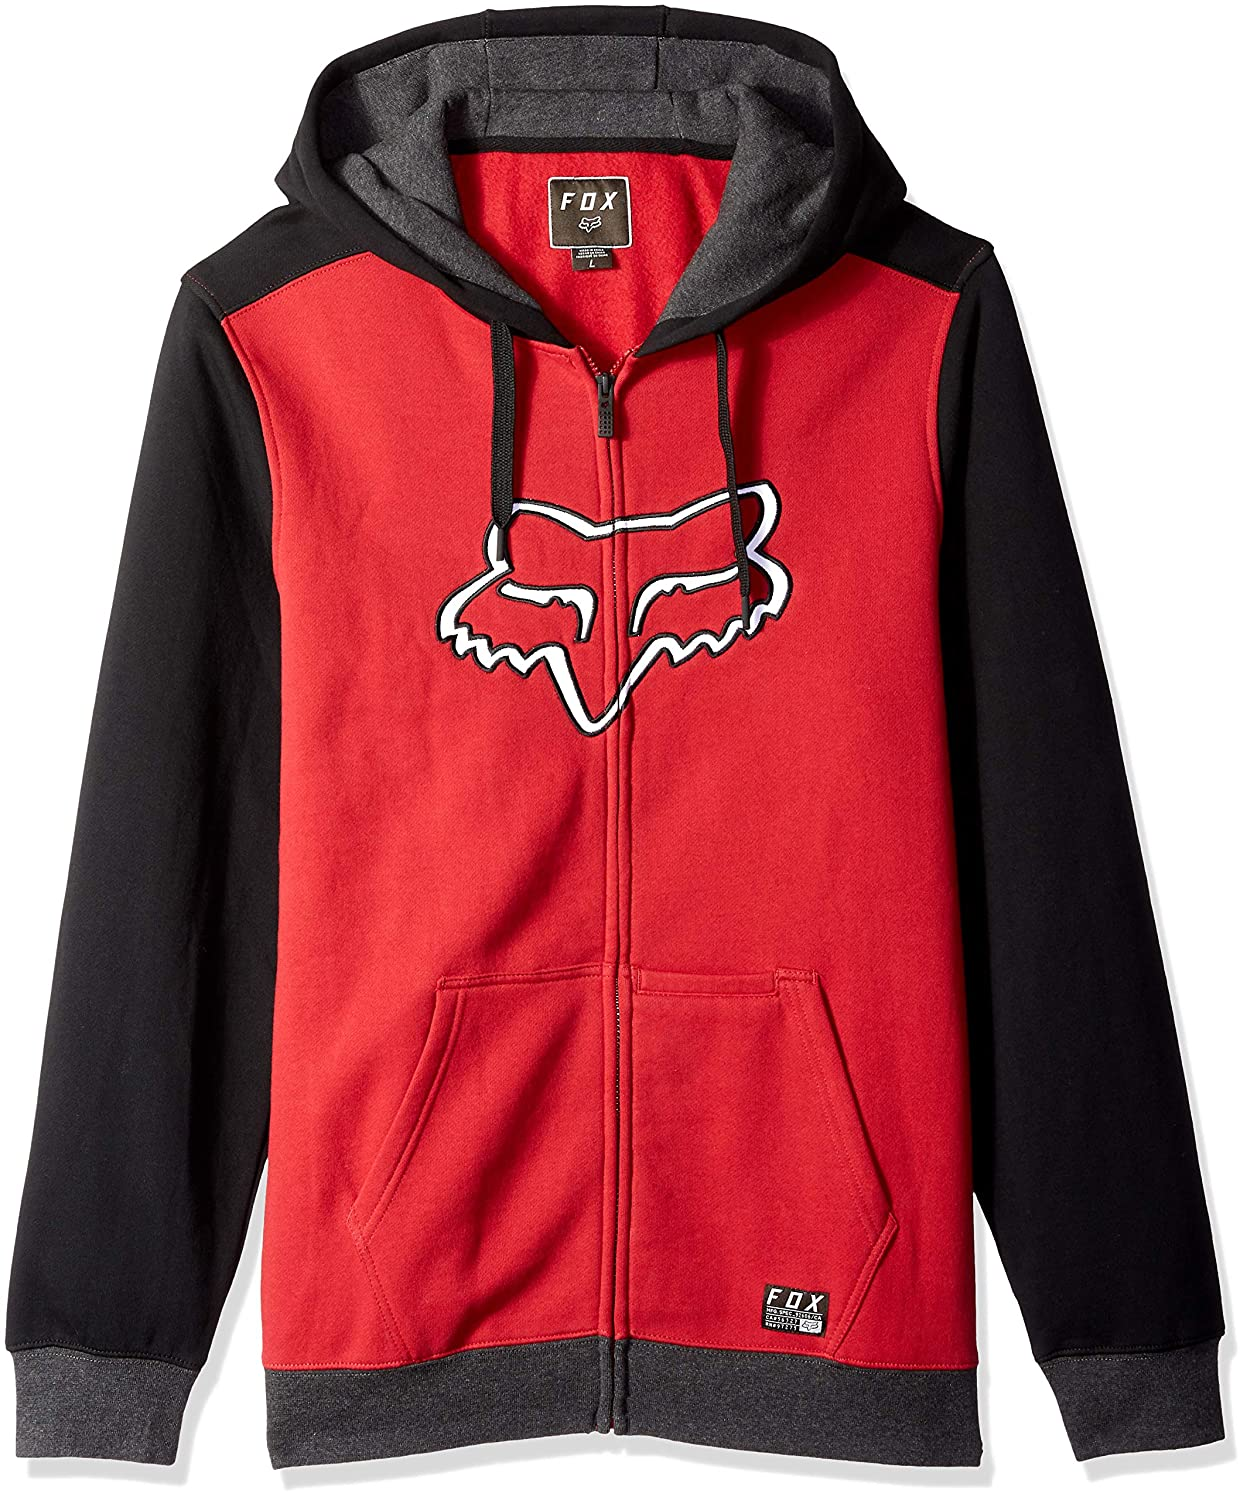 Fox Destrakt Zip Fleece Herren | Fruugo